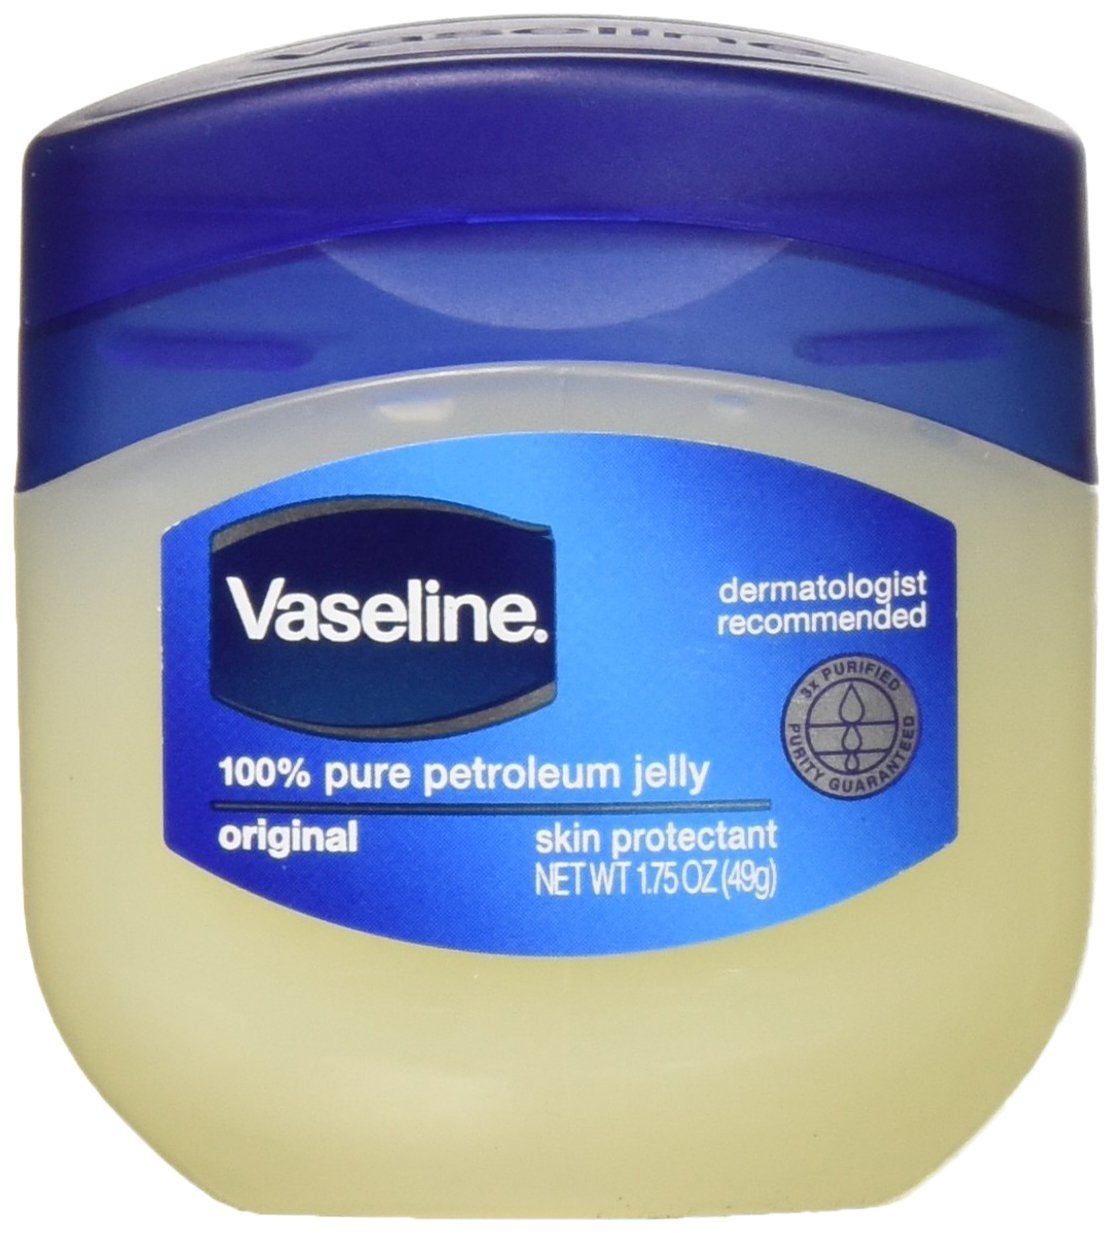 All The Size Of Vaseline Wiring Diagrams Circuit Block Diagram Features Max98400 Class D Audio Amplifier Amazon Com Petroleum Jelly Original 13 Oz 3 Pack Rh Travel